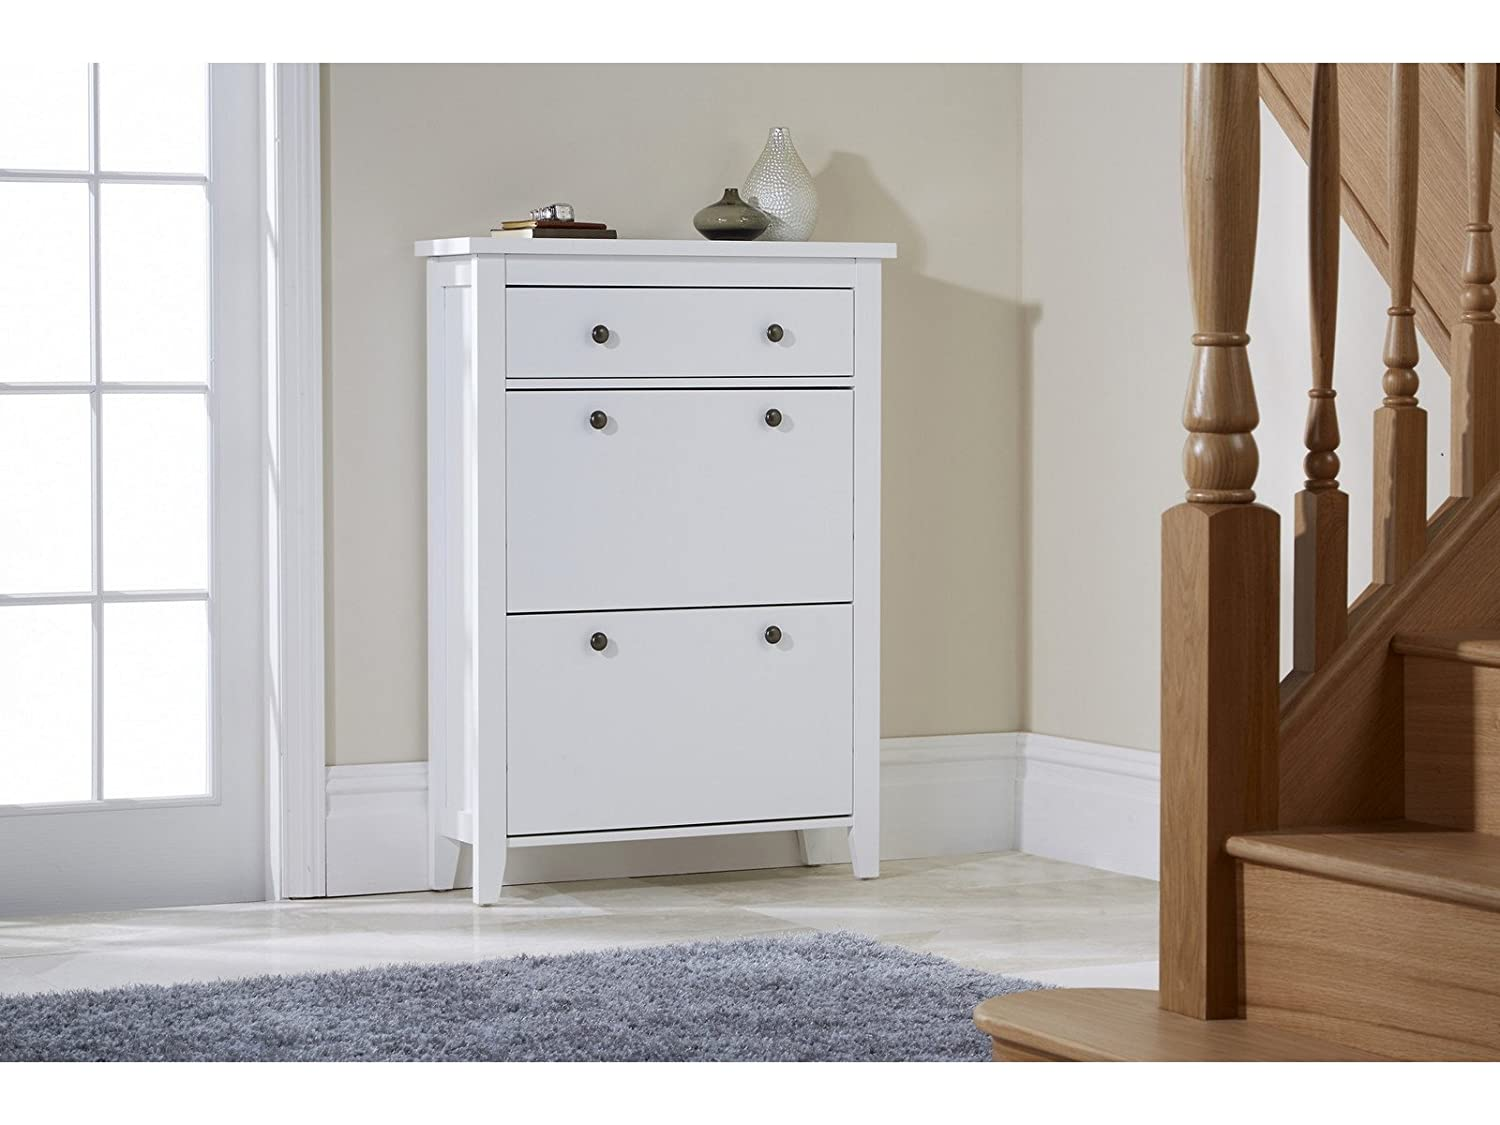 Charmant Shoe Storage Wood Cabinet Deluxe With Storage Drawer Cotswold In White:  Amazon.co.uk: Kitchen U0026 Home